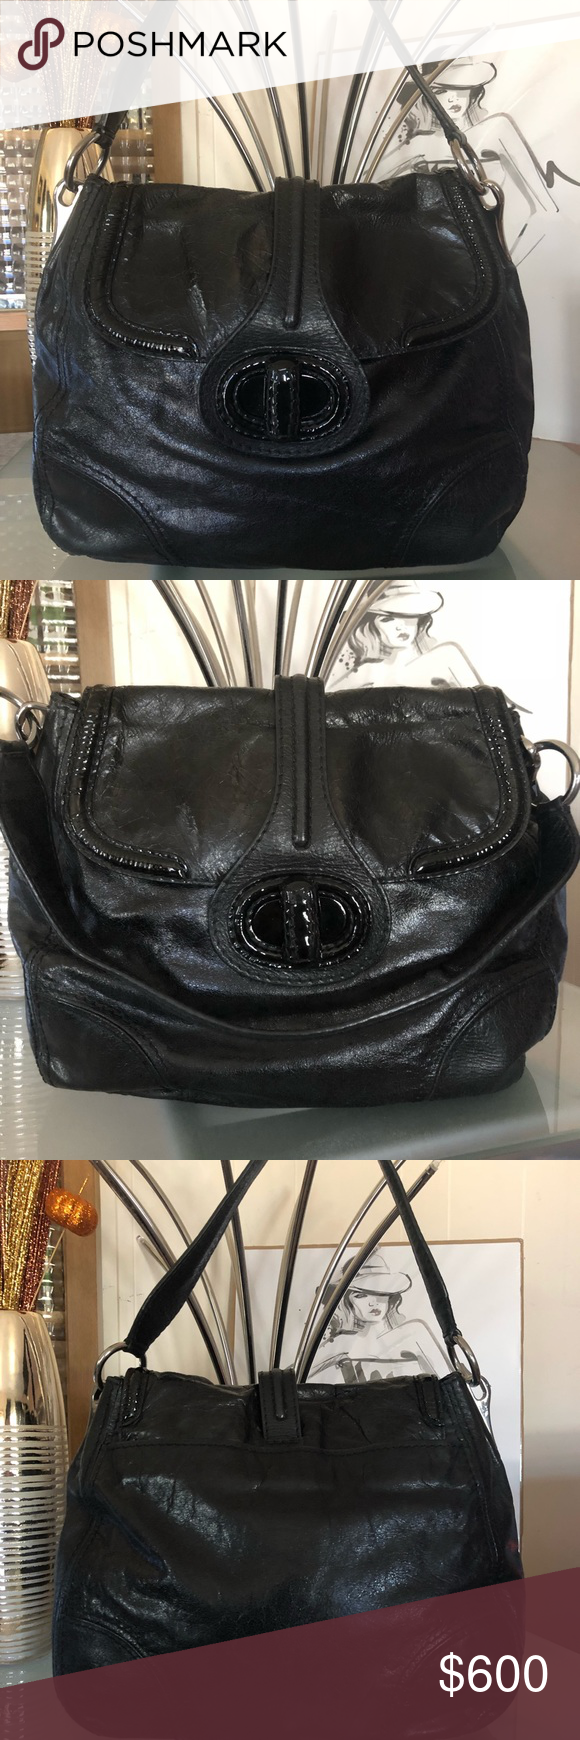 6448409afcb1 Authentic Large Prada Black Leather bag 100% Authentic Prada Bag Black  leather with metallic look. Large size Very clean inside and out No stains  inside ...